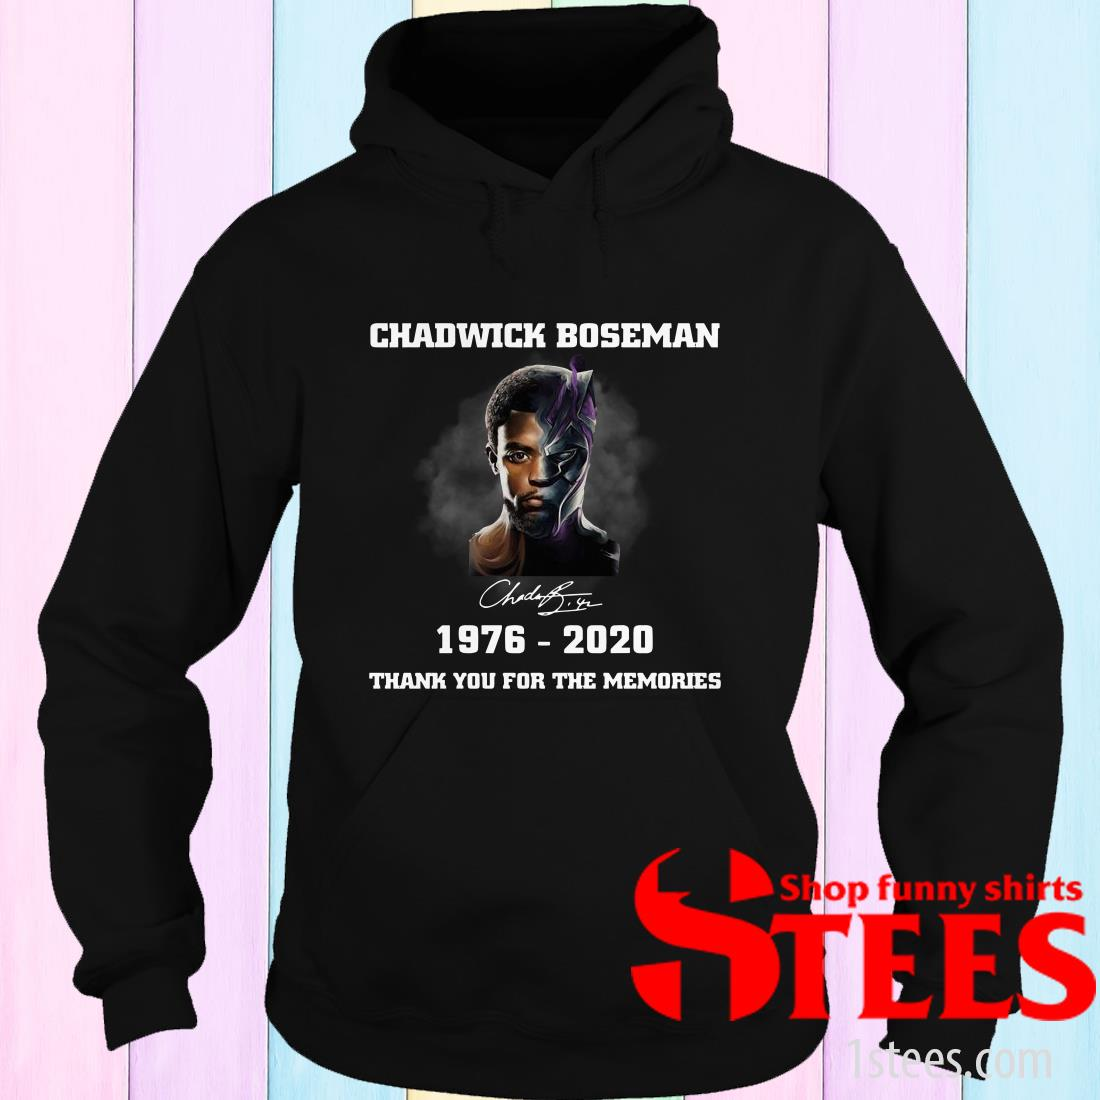 Chadwick Boseman Signature 1976-2020 Thank You For The Memories Hoodies